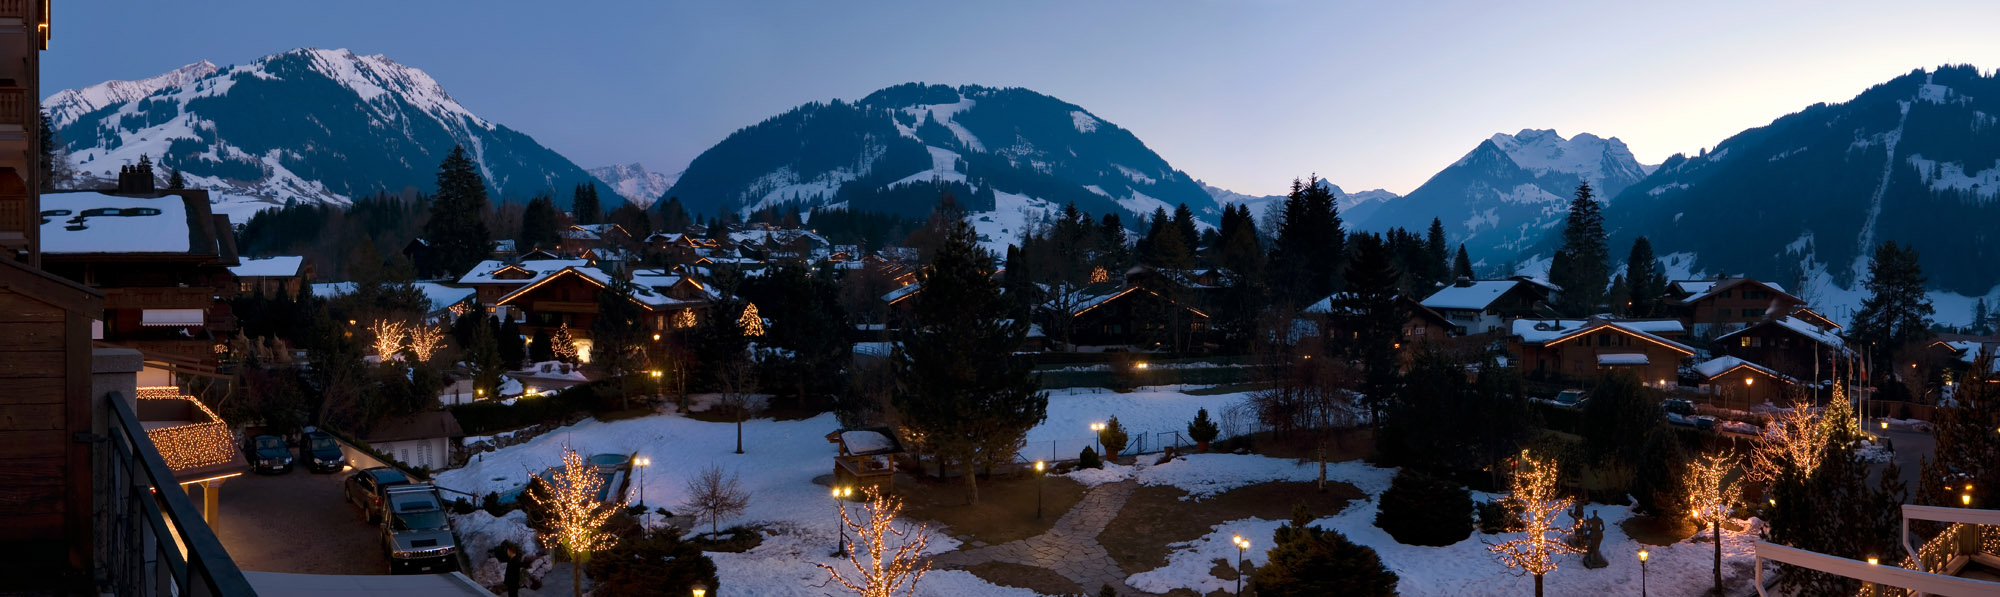 <b><font>Gstaad | Switzerland</font></b> The day breaks on the snowy Swiss Alps